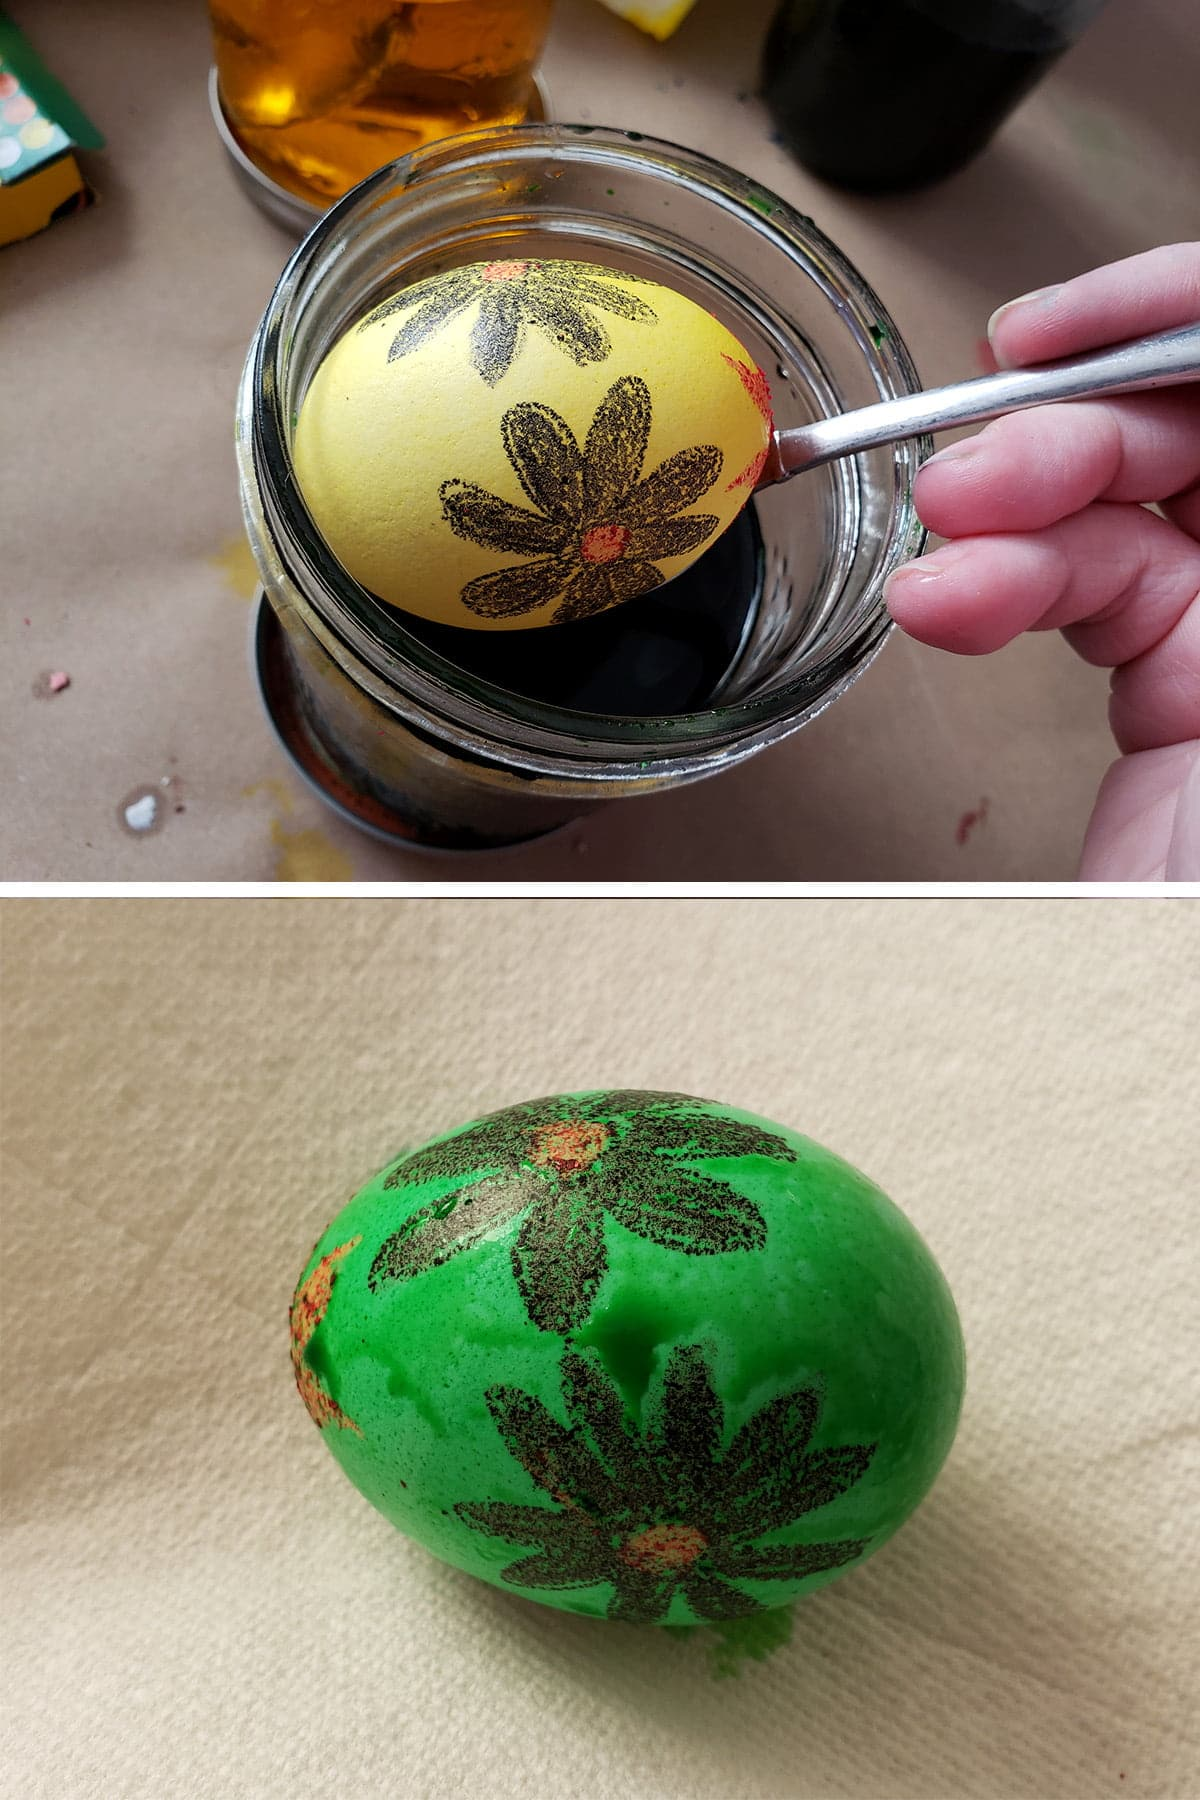 A two part image showing a yellow egg with black daisies on it being lowered into a jar of green dye, then shows it as a green egg with black daisies on it.